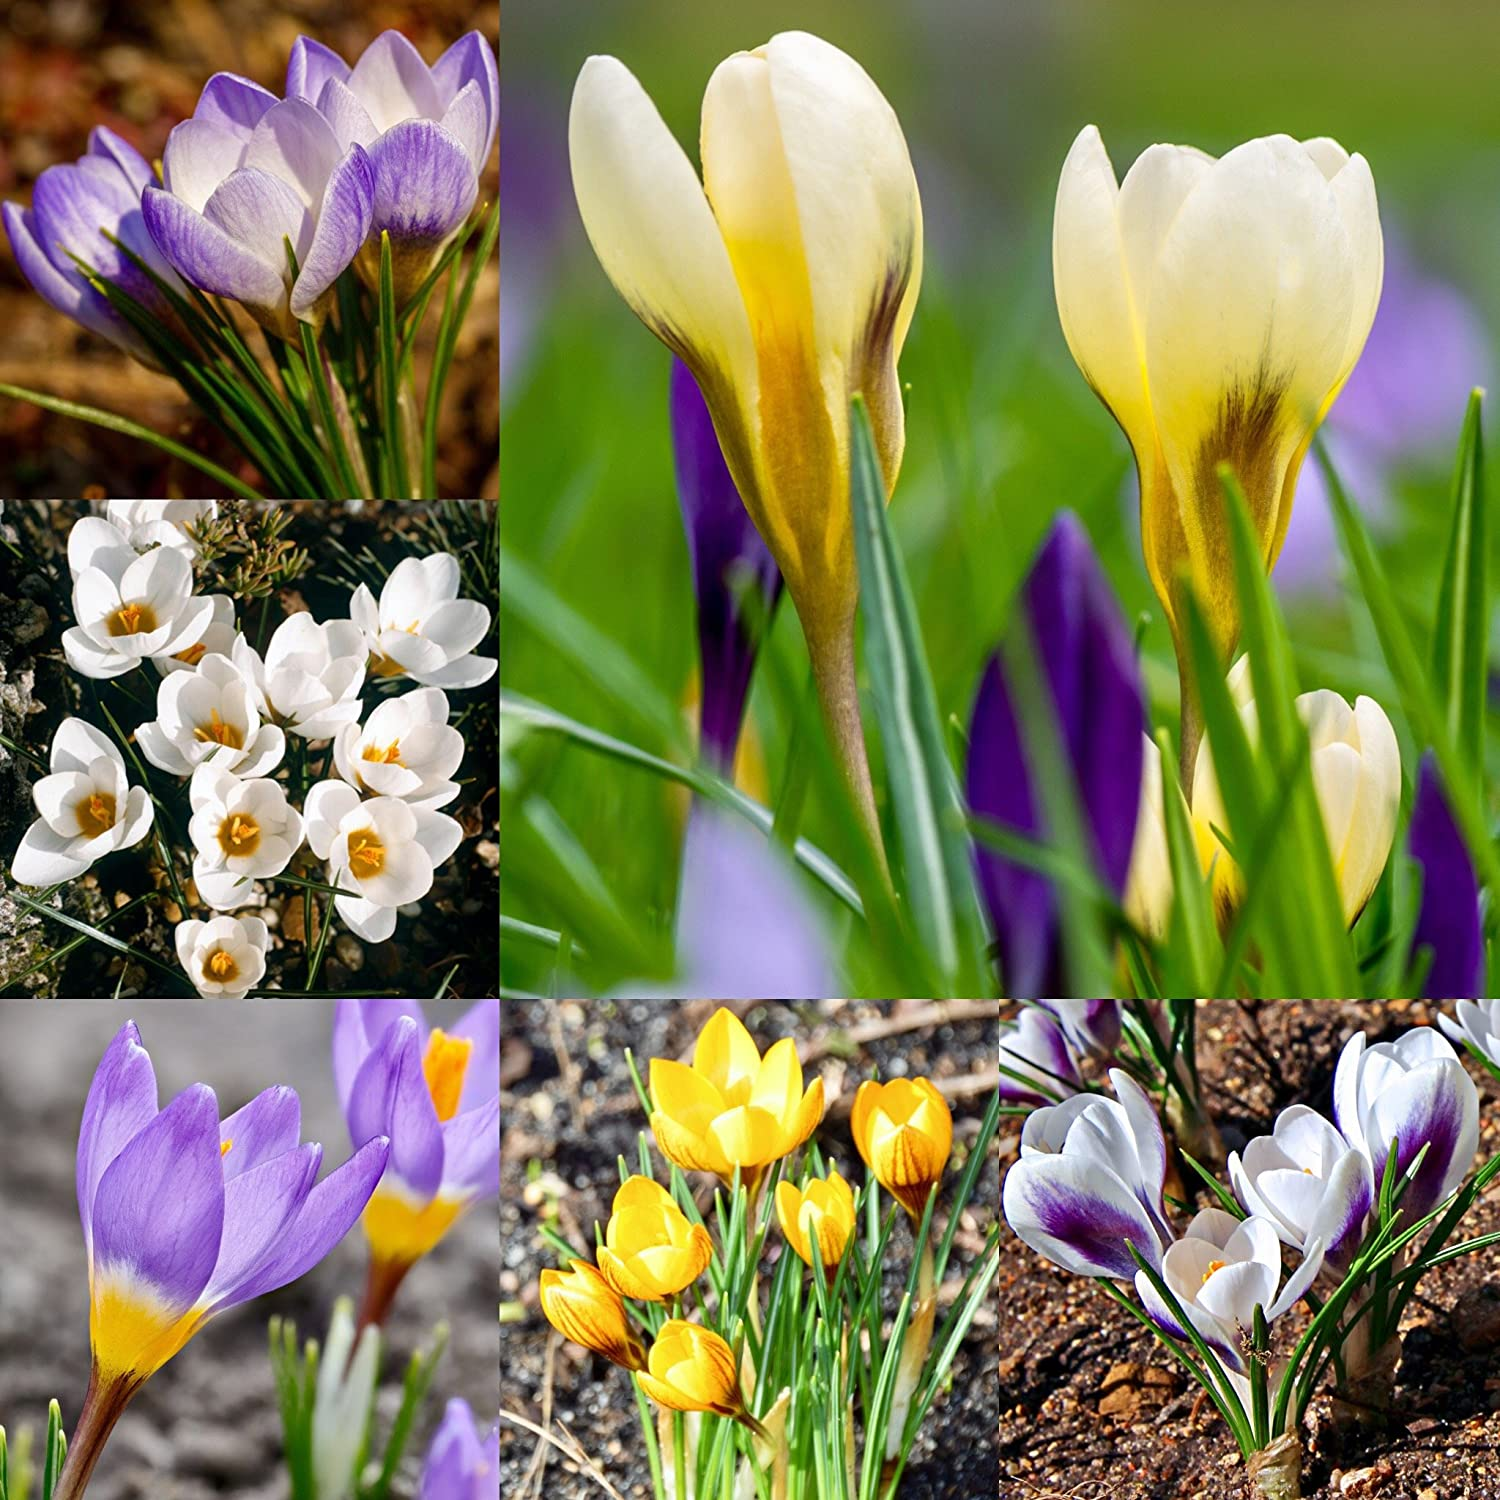 50 x crocus bulbs mixed species spring flowering bulbs amazon 50 x crocus bulbs mixed species spring flowering bulbs amazon garden outdoors mightylinksfo